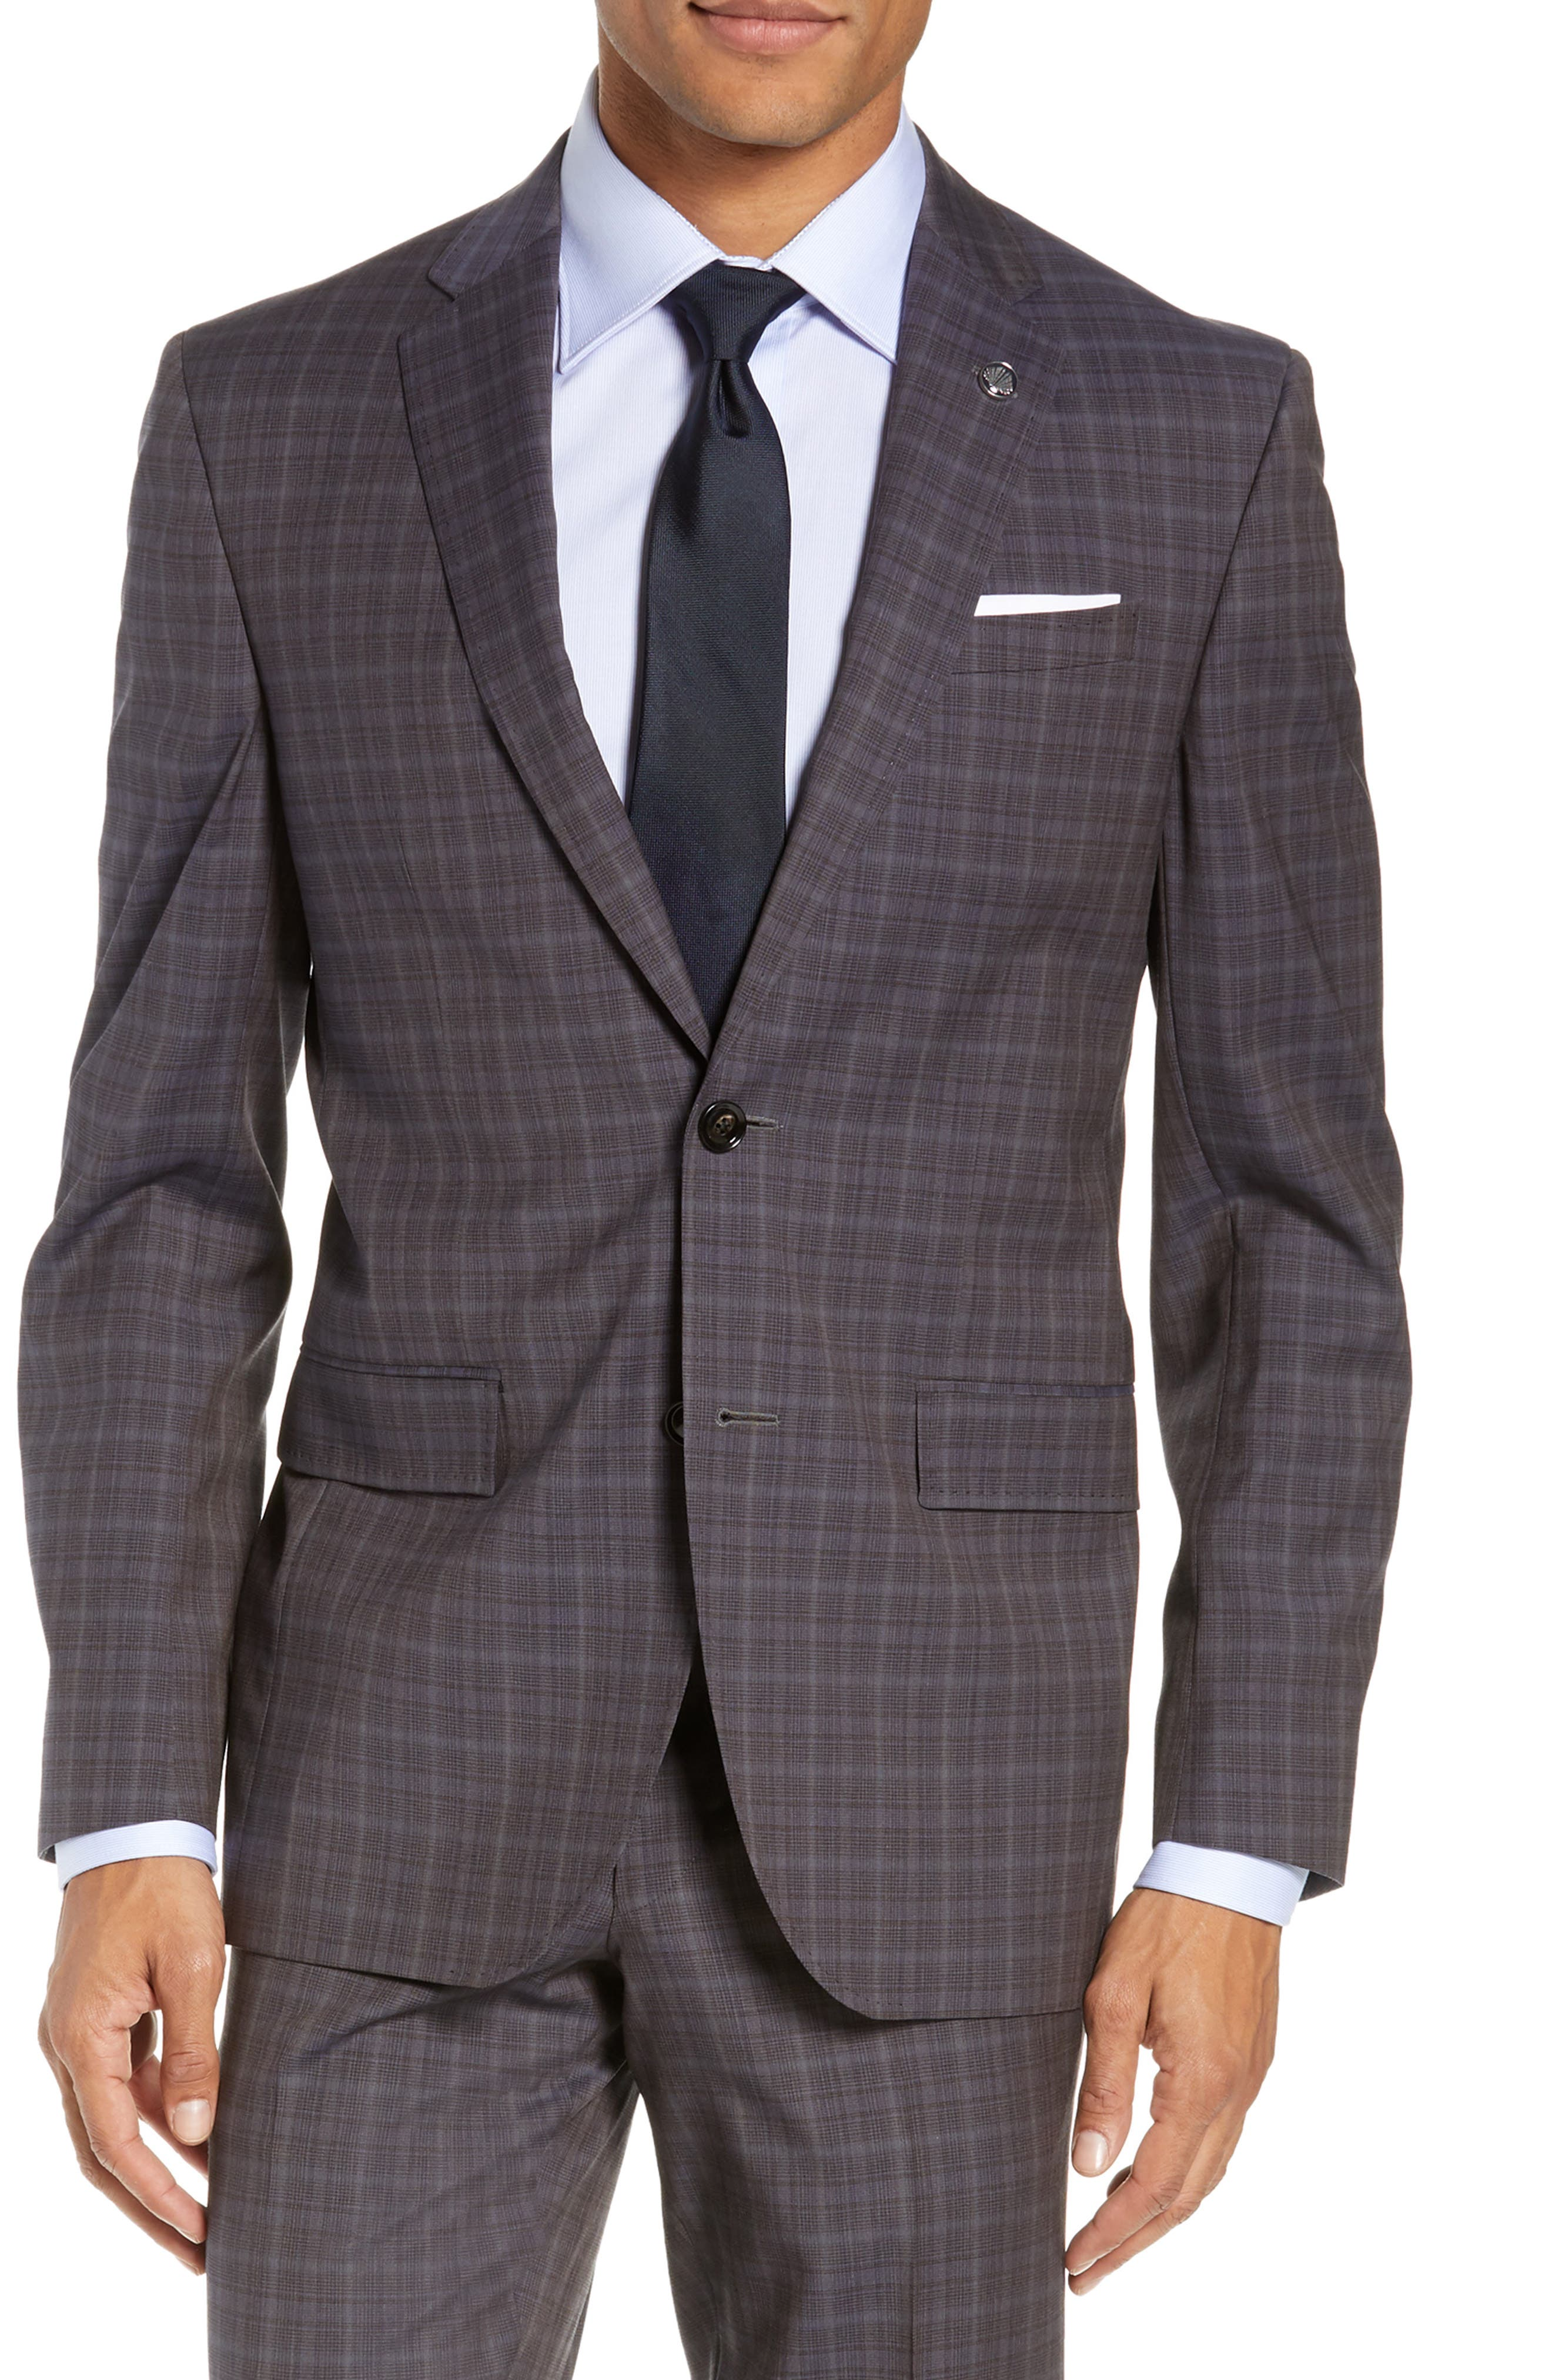 TED BAKER LONDON,                             Jay Trim Fit Plaid Wool Suit,                             Alternate thumbnail 5, color,                             TAUPE